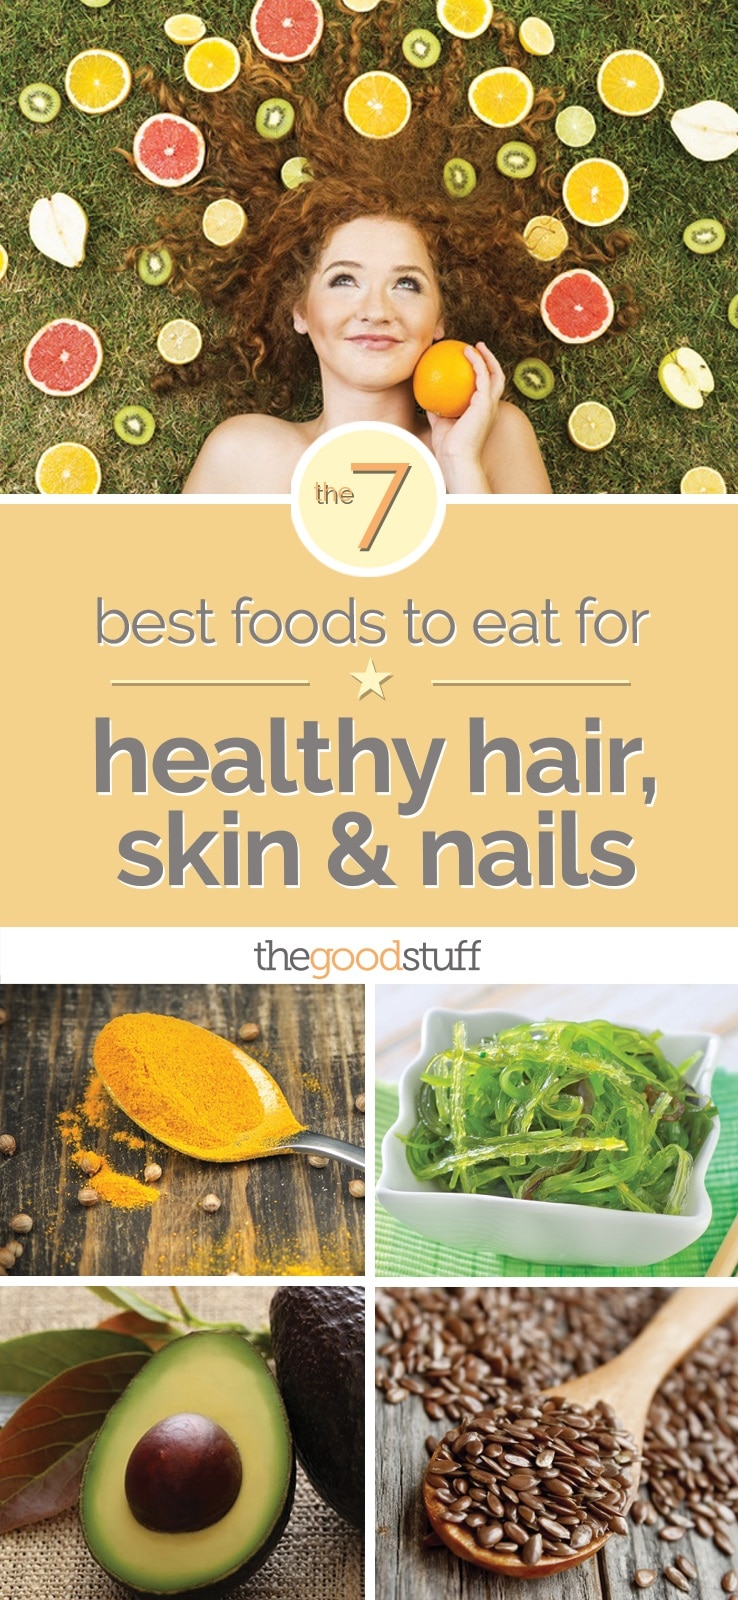 Ready to nosh your way to better hair and skin? You can. Research is now showing that it's possible to influence your looks simply by choosing specific foods. Hair growth (and fallout), skin collagen production, is one of the best natural nutrients for your hair, boosting growth and .